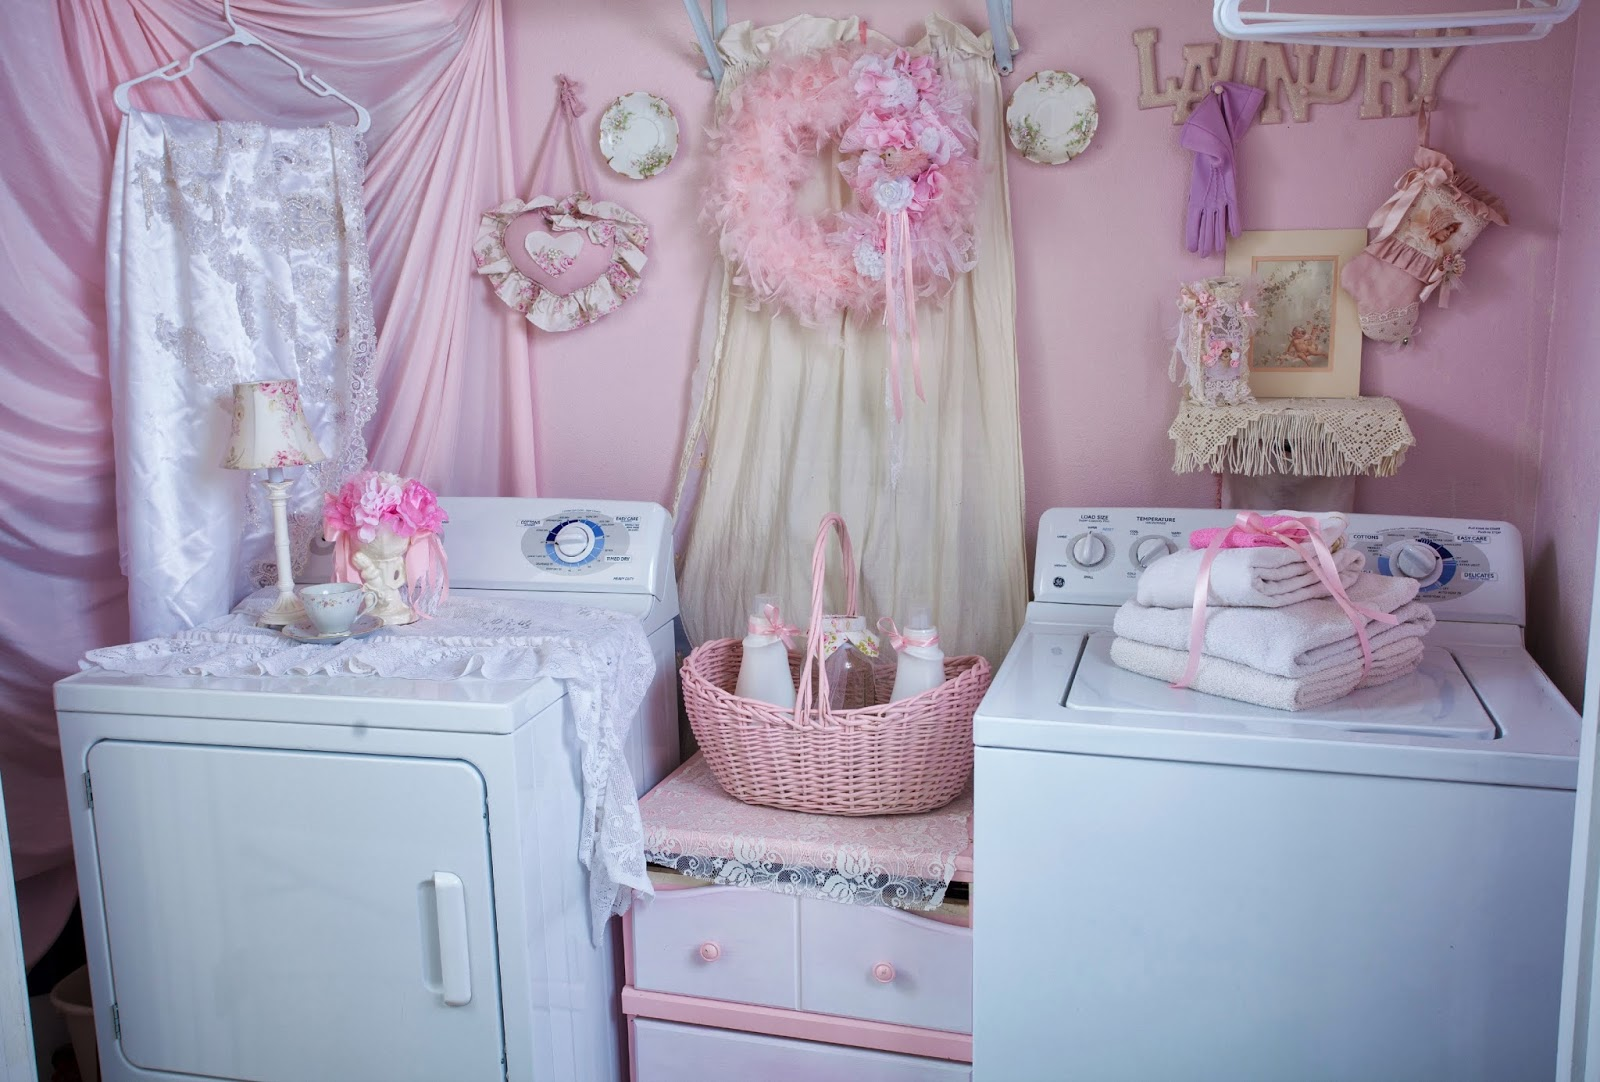 olivia 39 s romantic home shabby chic pink laundry room. Black Bedroom Furniture Sets. Home Design Ideas